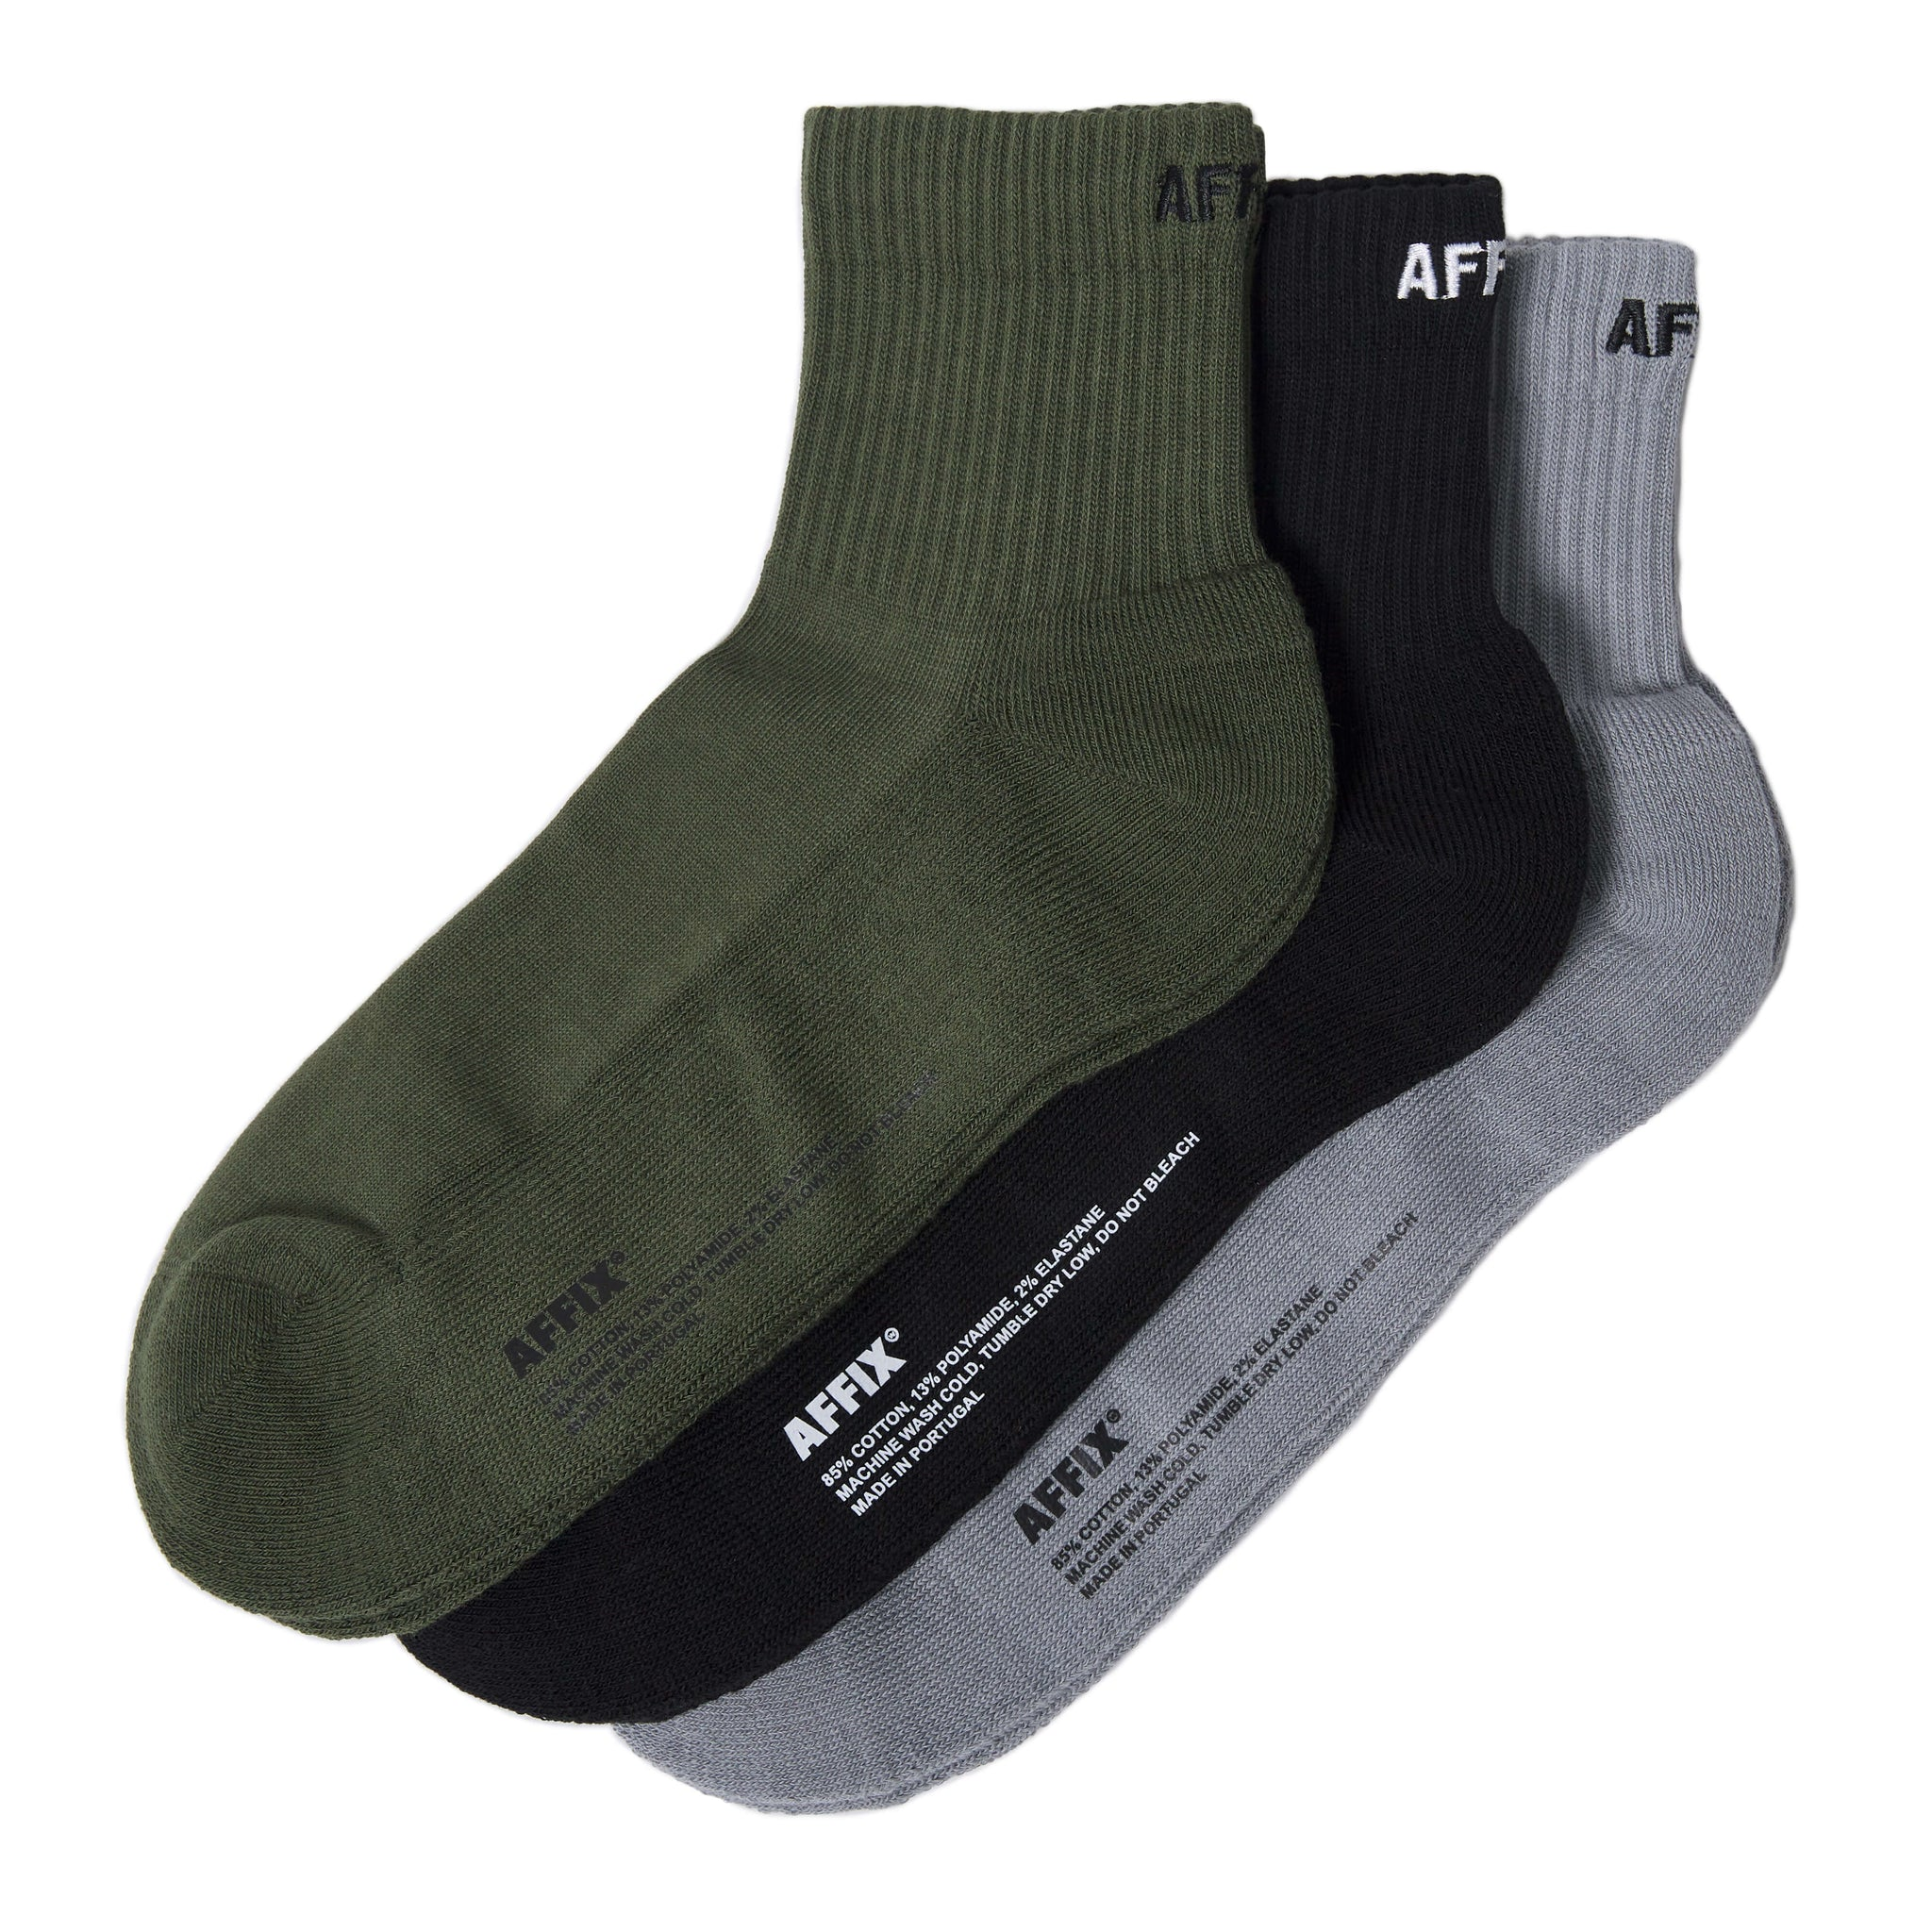 AFFIX WORKS AFFX WRKS SHORT RIB SOCK 3 PACK BLACK/GREY/OLIVE